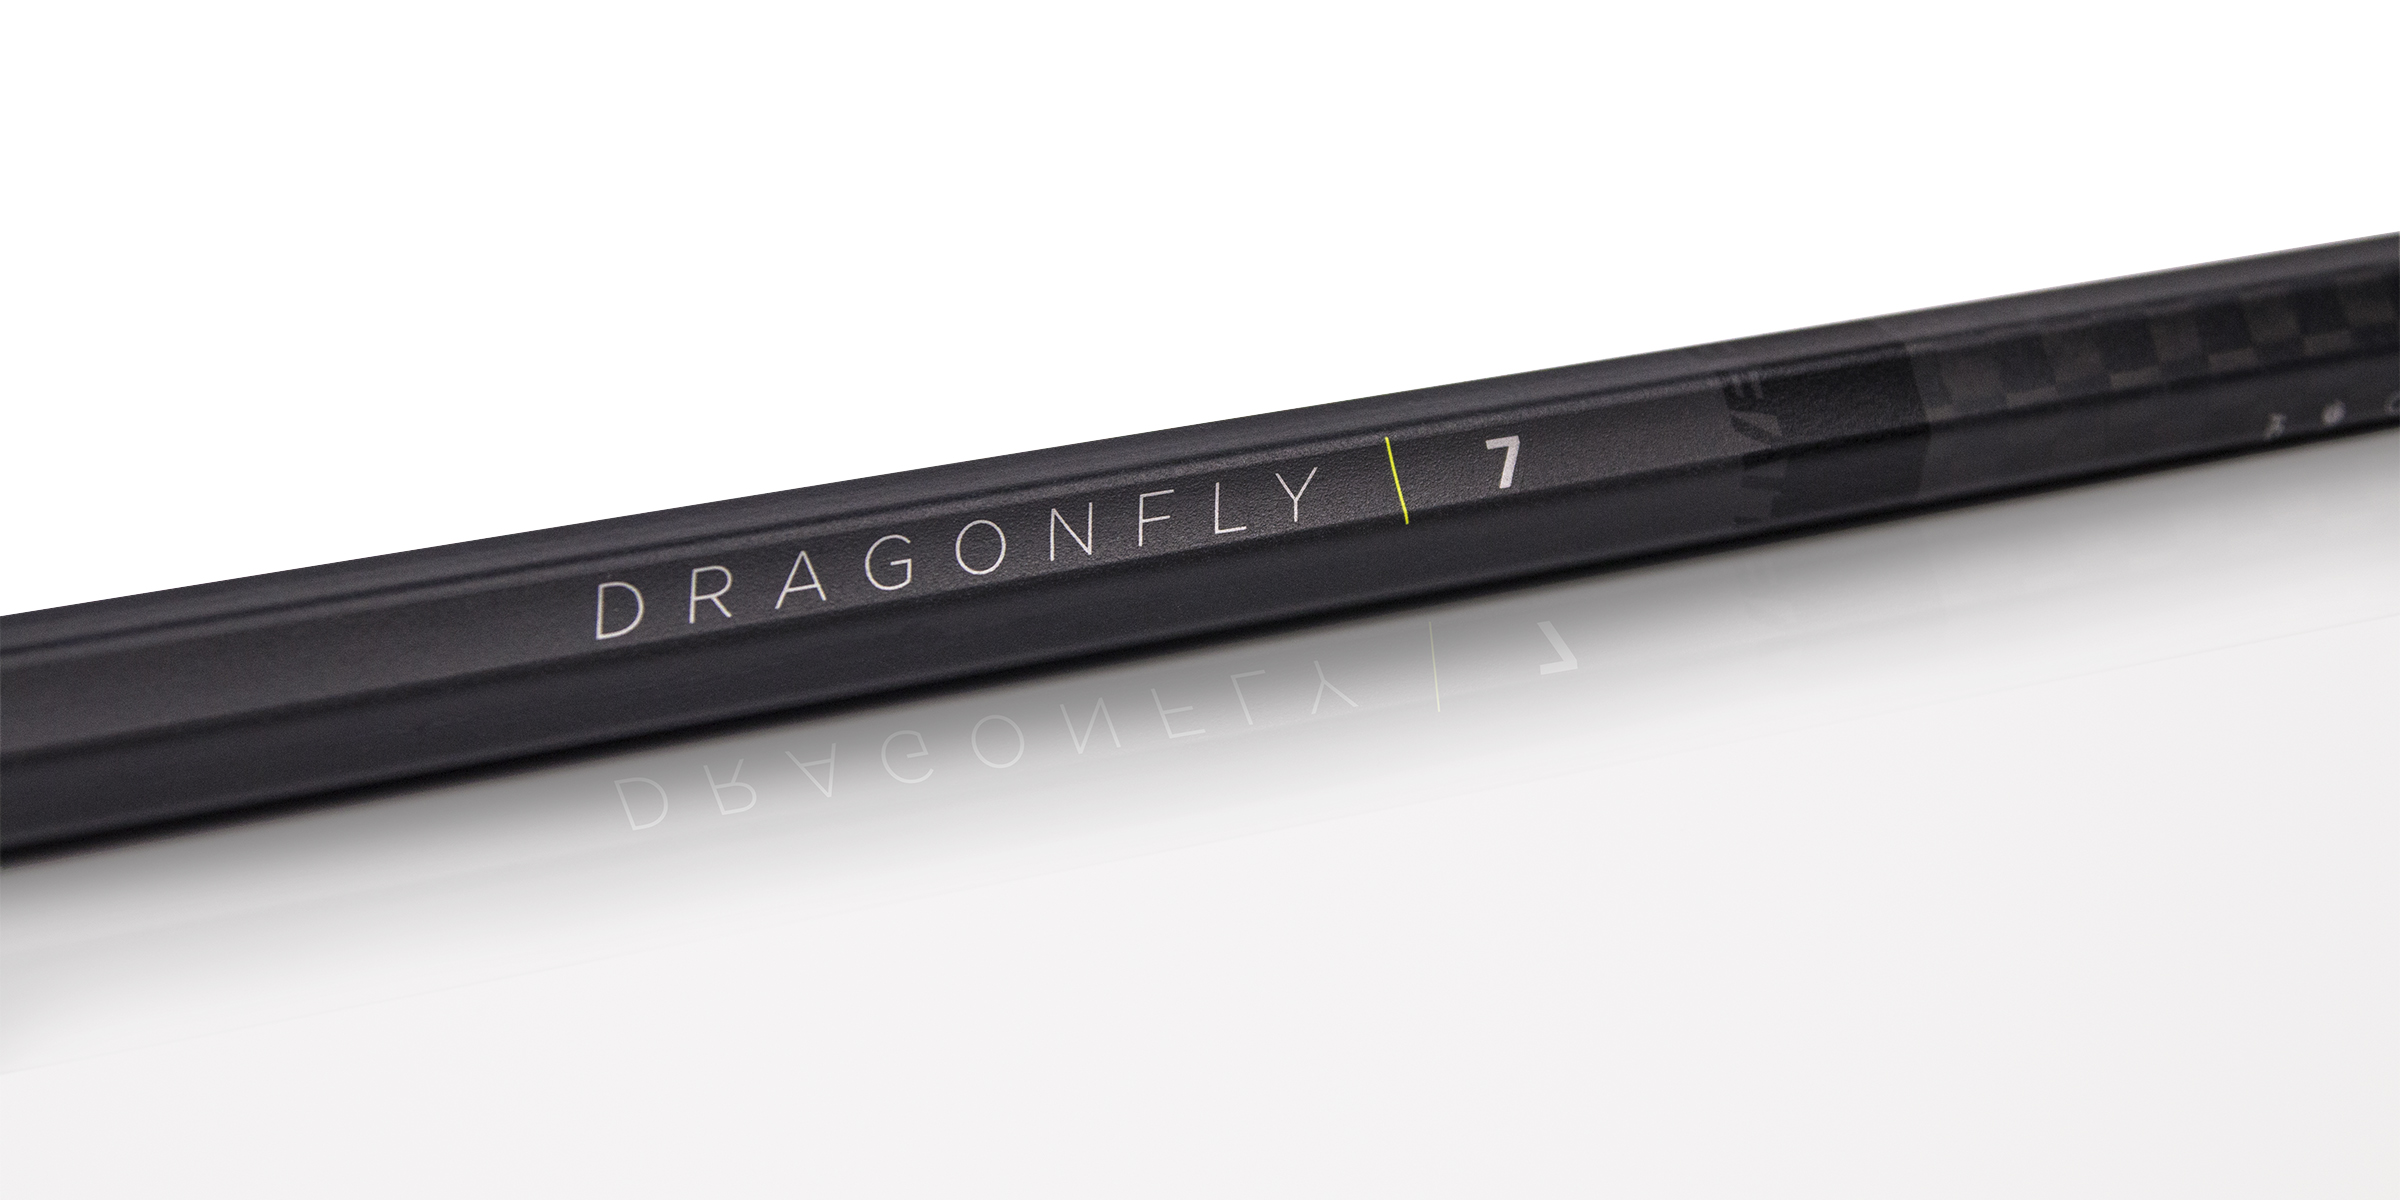 dragonfly7